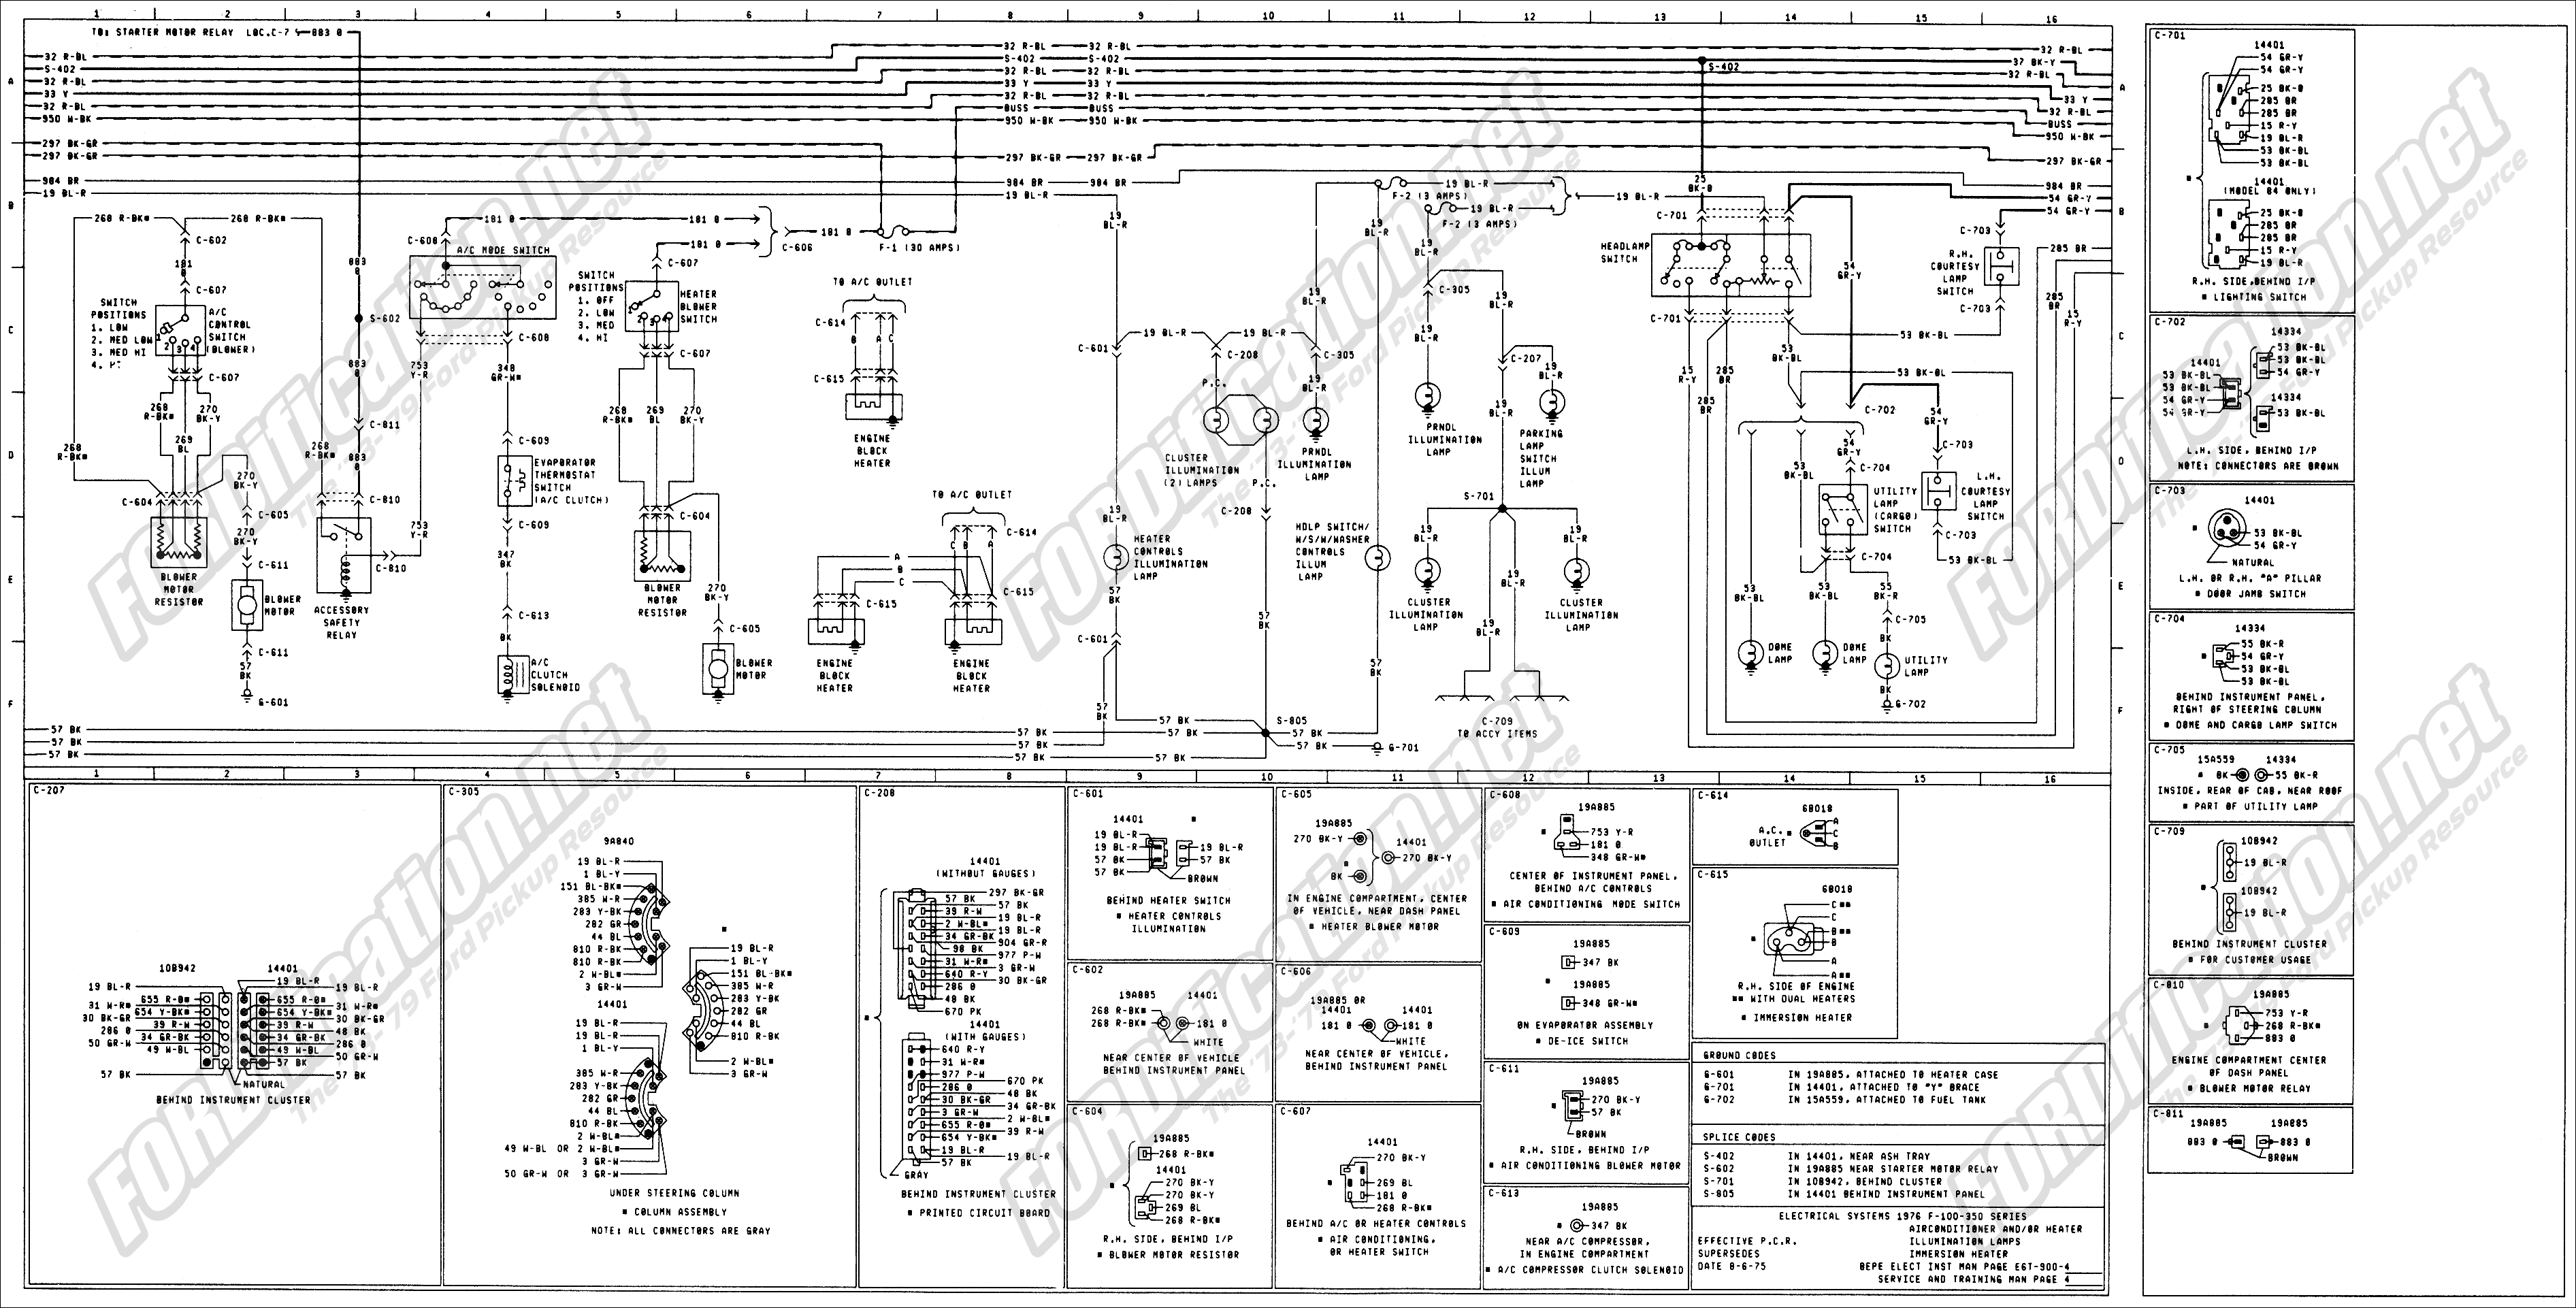 wiring_76master_4of9 1973 1979 ford truck wiring diagrams & schematics fordification net 1985 ford f150 ignition wiring diagram at highcare.asia